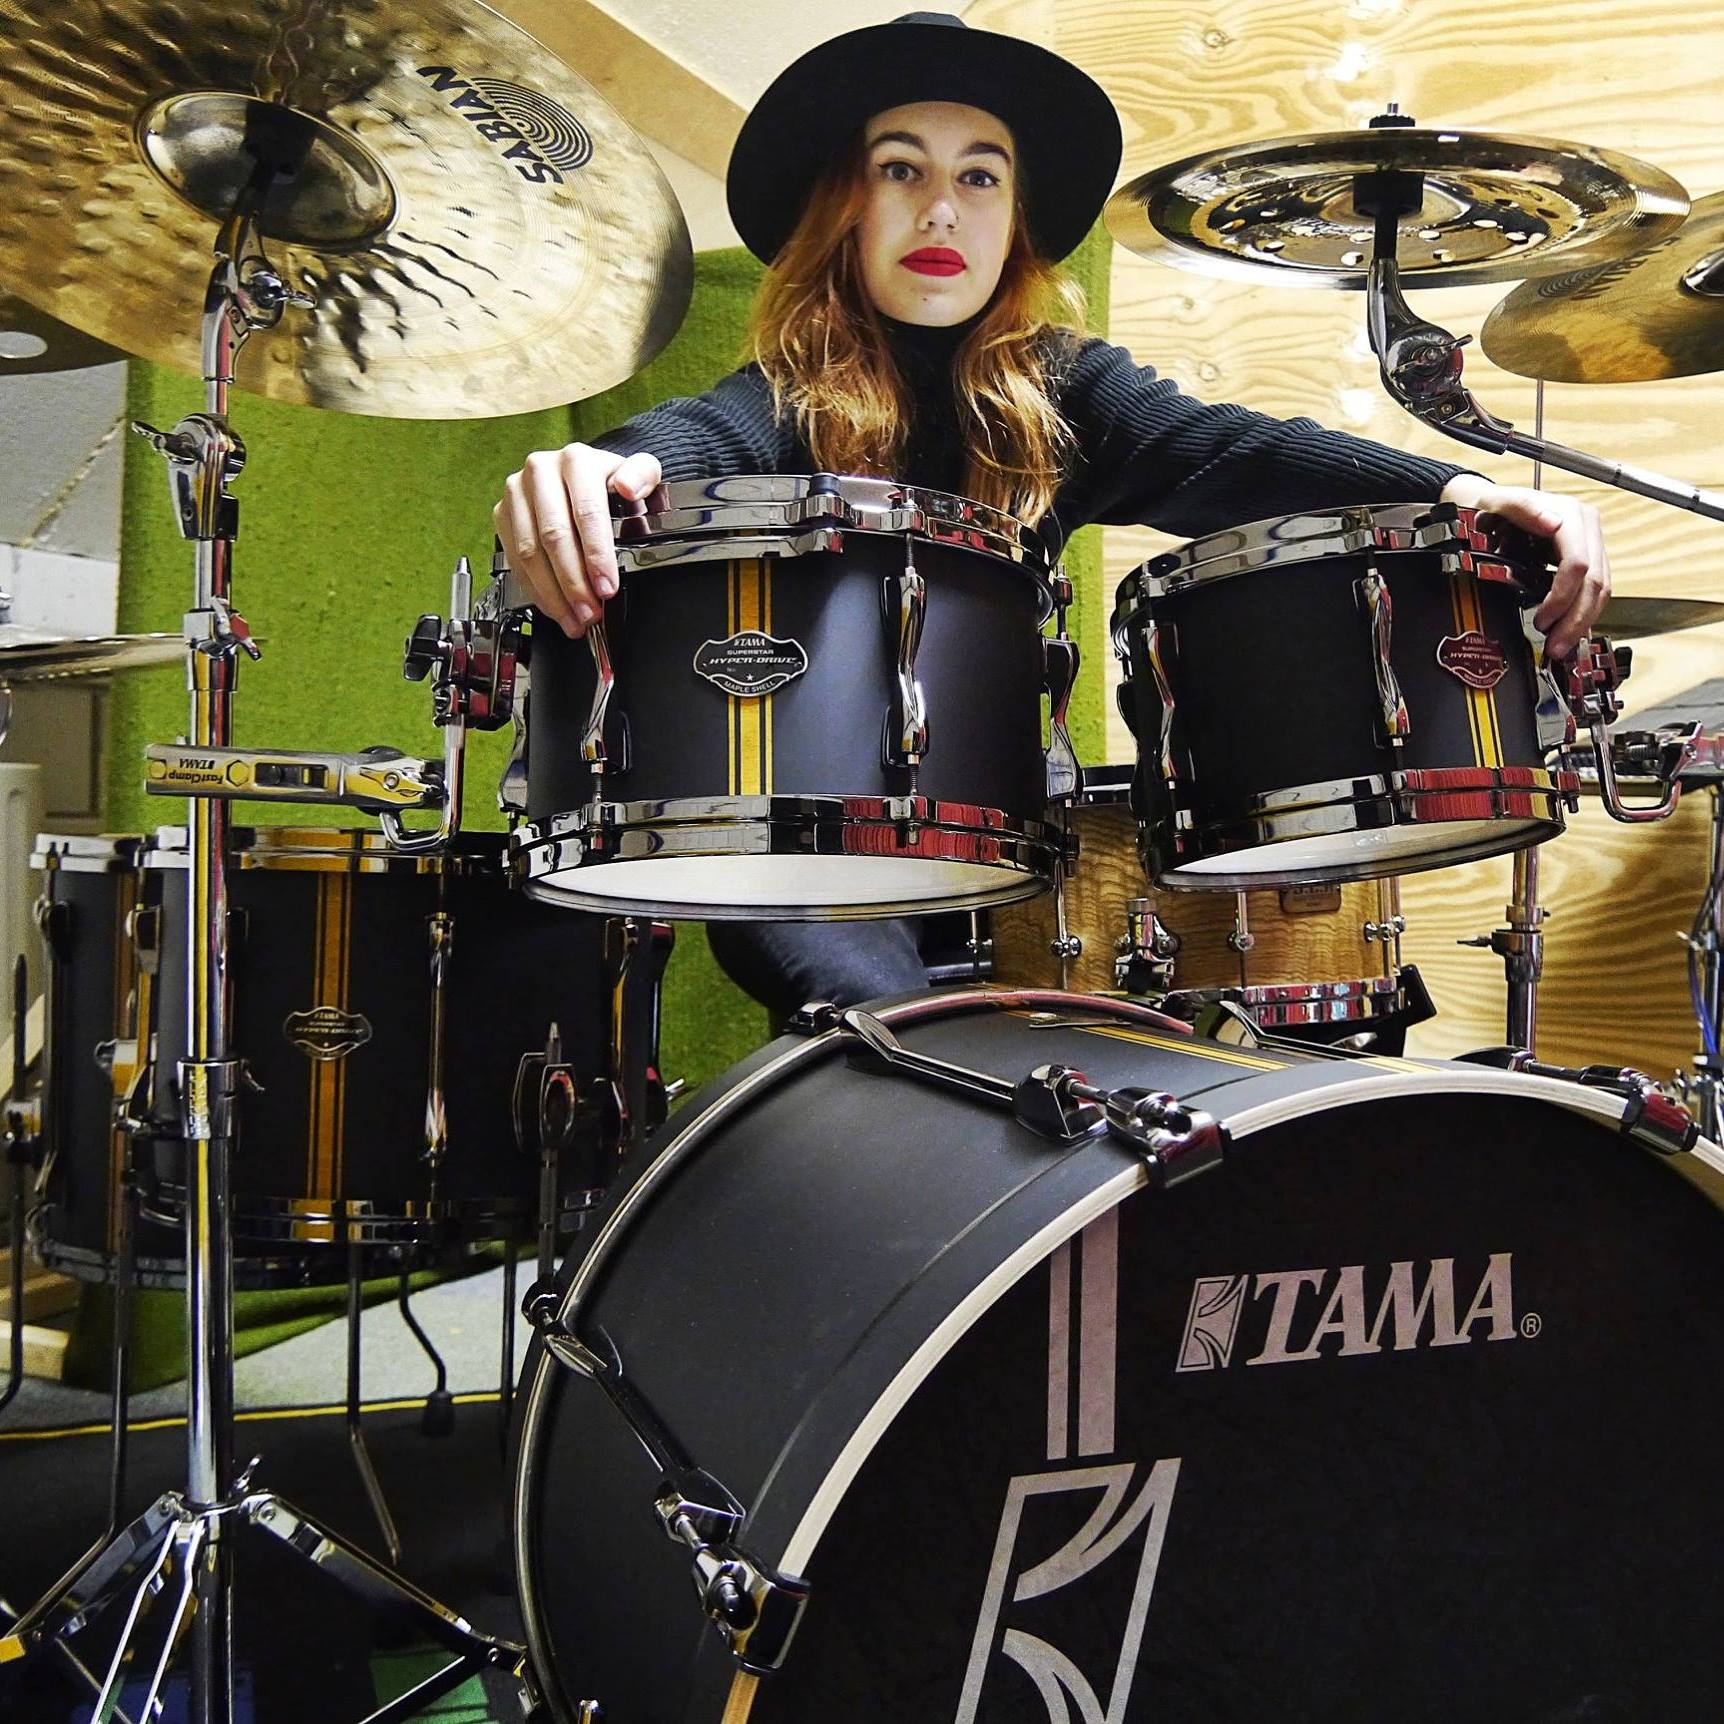 Mira BurgersSabian - Mira Burgers is the drummer in the band Down South. She's also a music composer and teacher.https://www.facebook.com/mira.burgershttps://www.instagram.com/miradrumt/https://www.miraburgers.nl